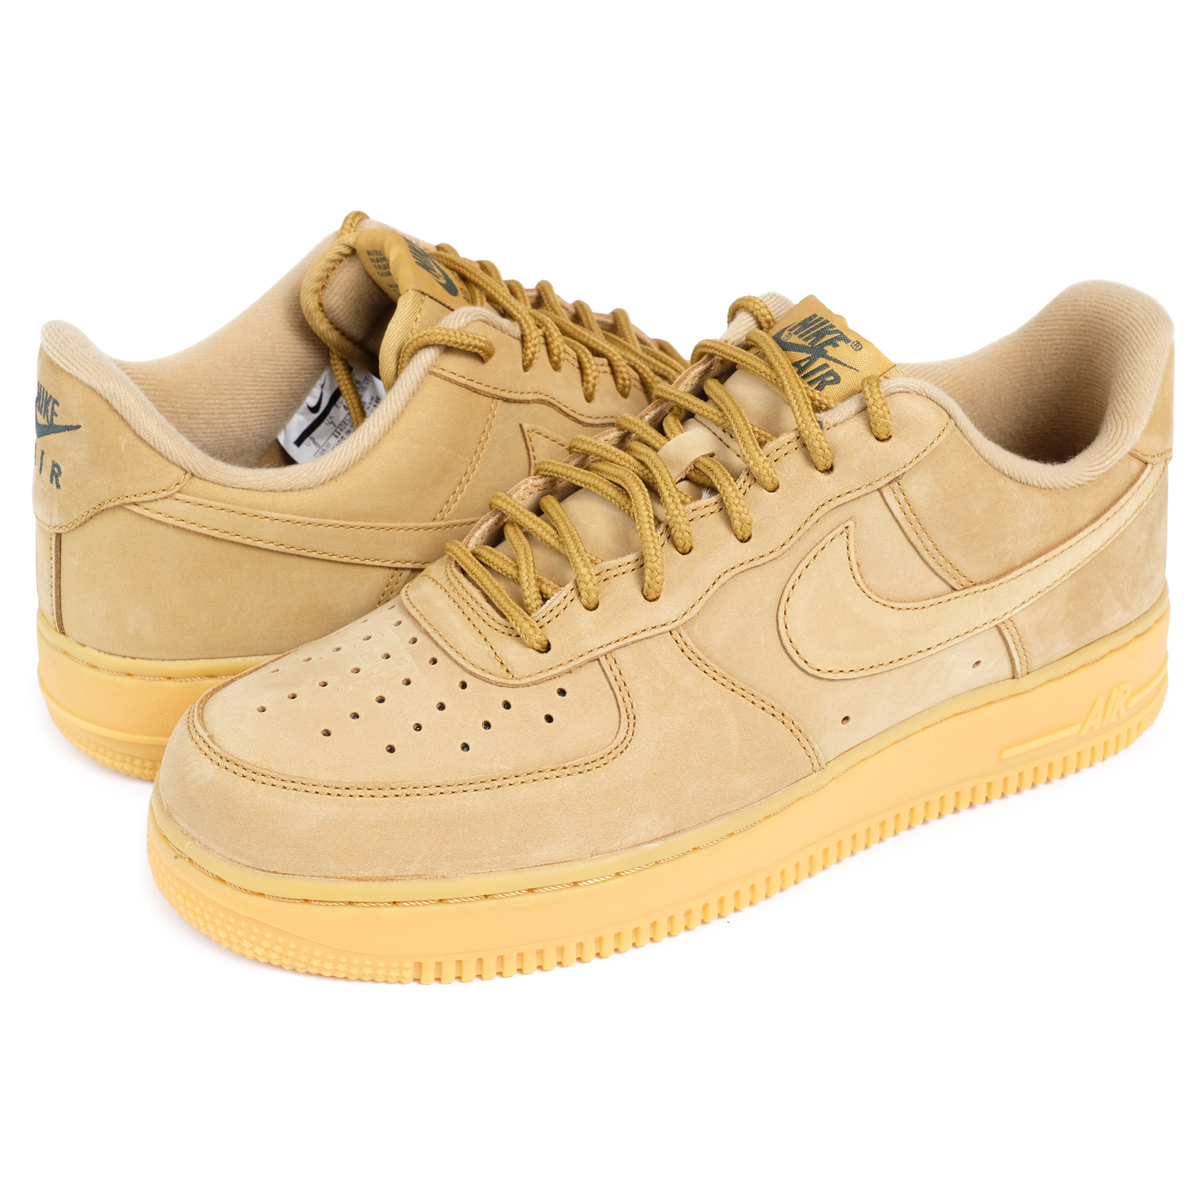 quality design b5ad8 4dd7d NIKE AIR FORCE 1 WB Nike air force 1 sneakers AA4061-200 men gap Dis shoes  brown [load planned Shinnyu load in reservation product 11/17 containing]  ...